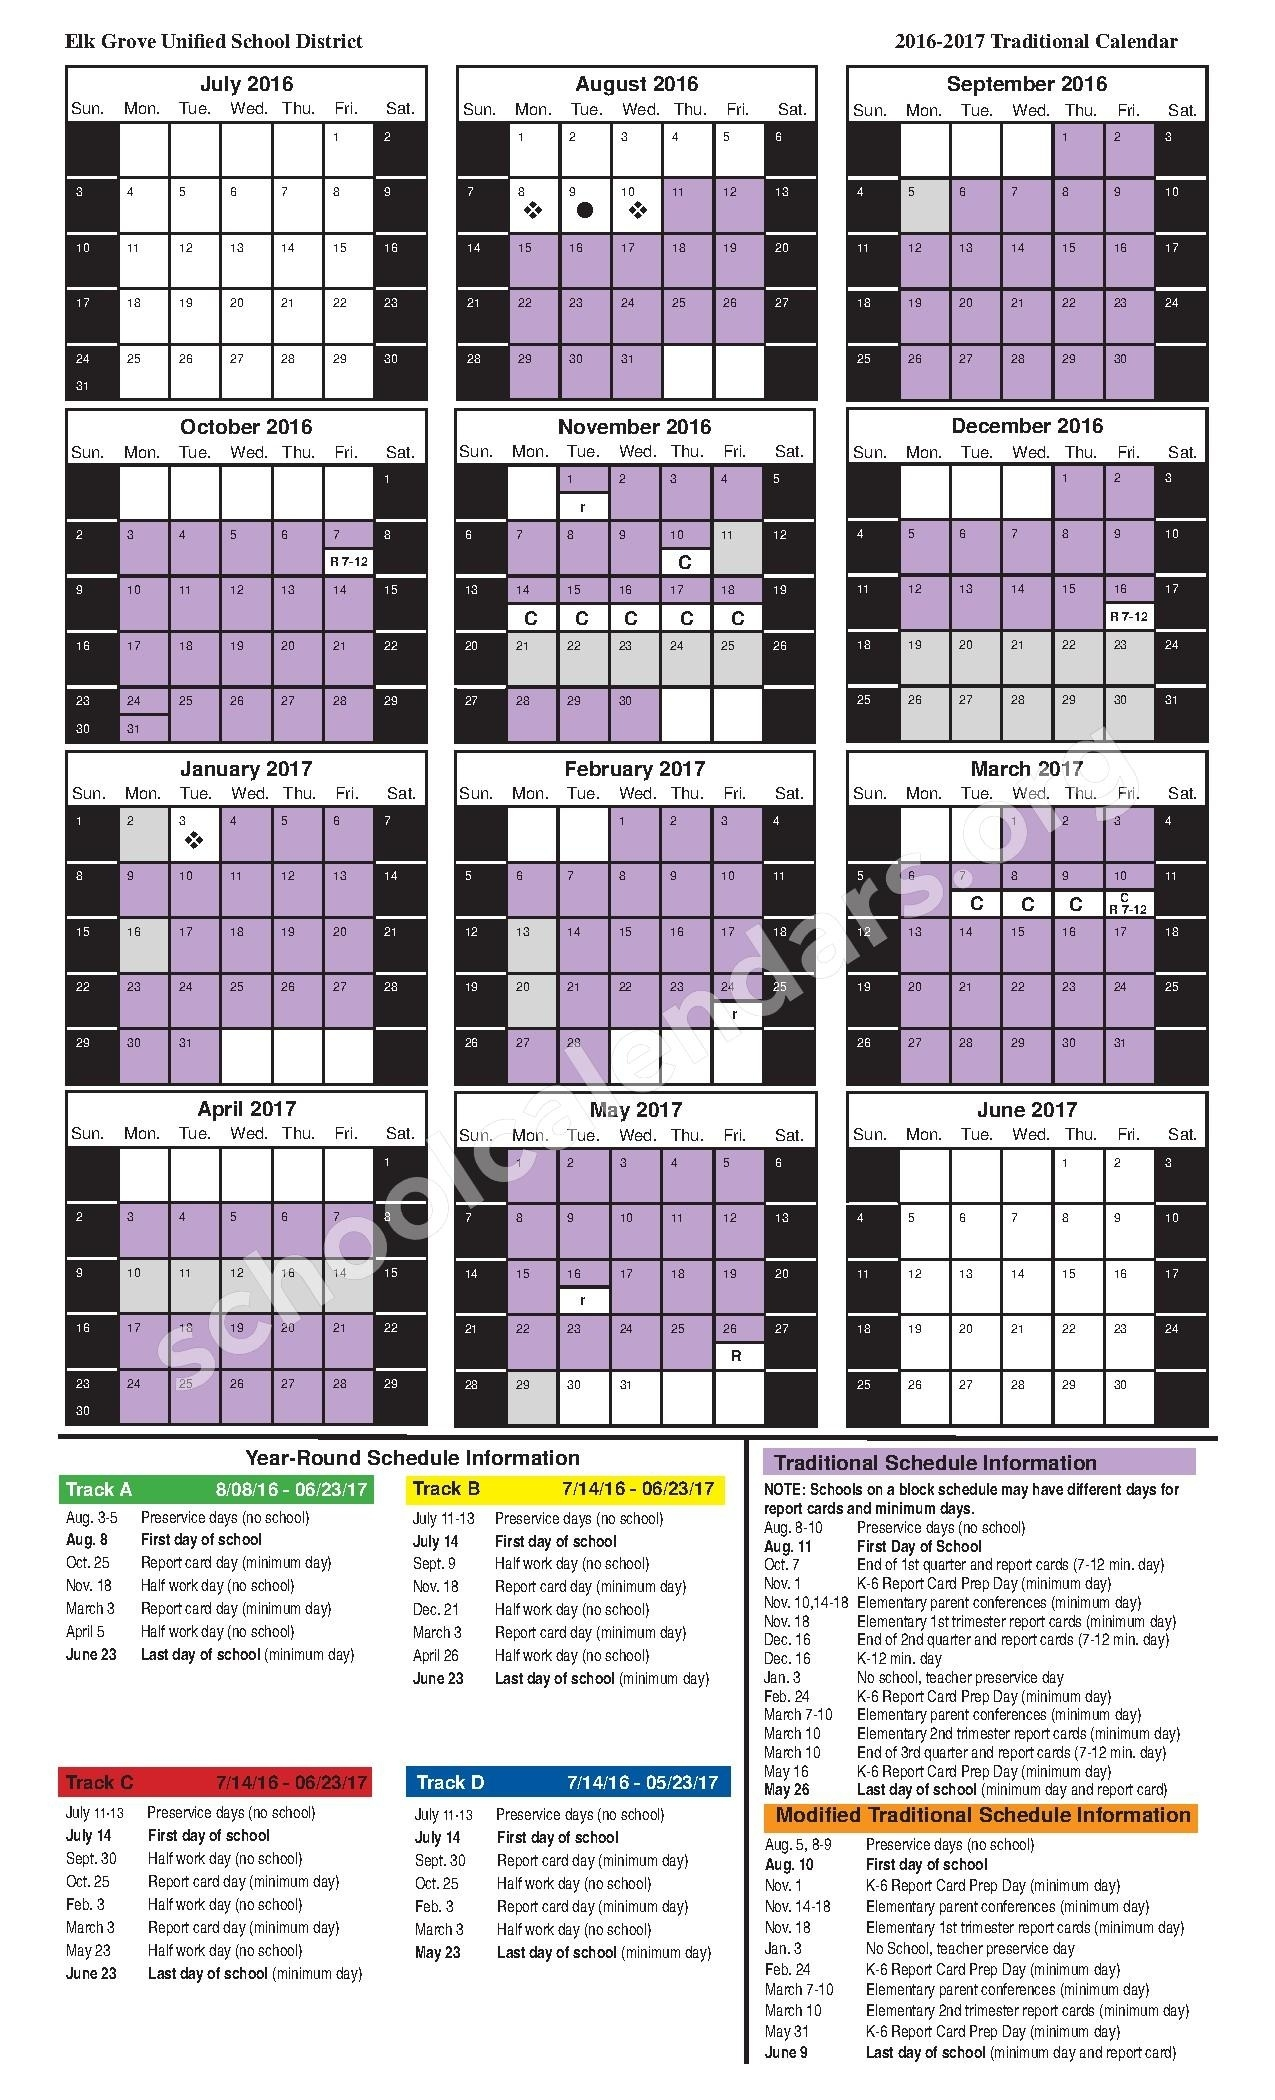 2016-2017 Traditional Calendar | Elk Grove Unified School District_School Calendar Elk Grove